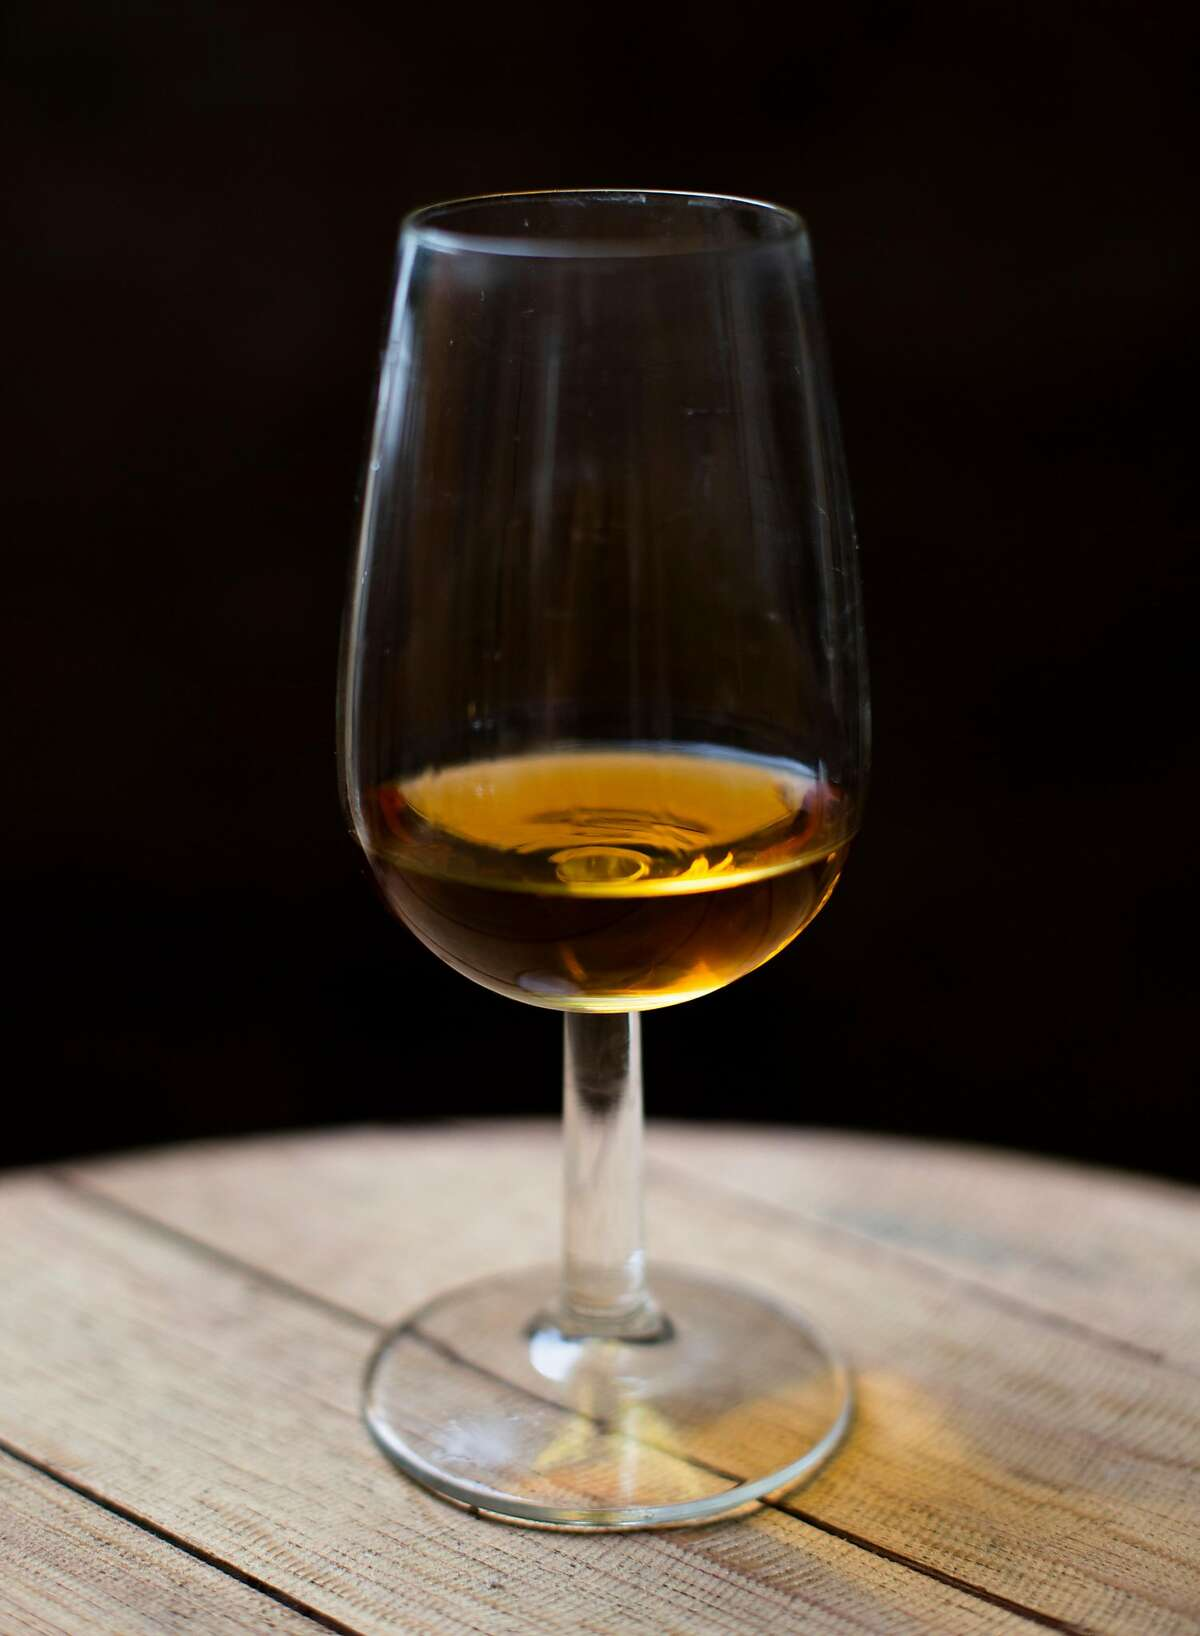 Aged cognac made by distiller Dan Farber photographed in his distillery Sunday, 9/30, 2018 in Soquel, California. Farber is the owner of Osocalis, a small, artisanal distillery.